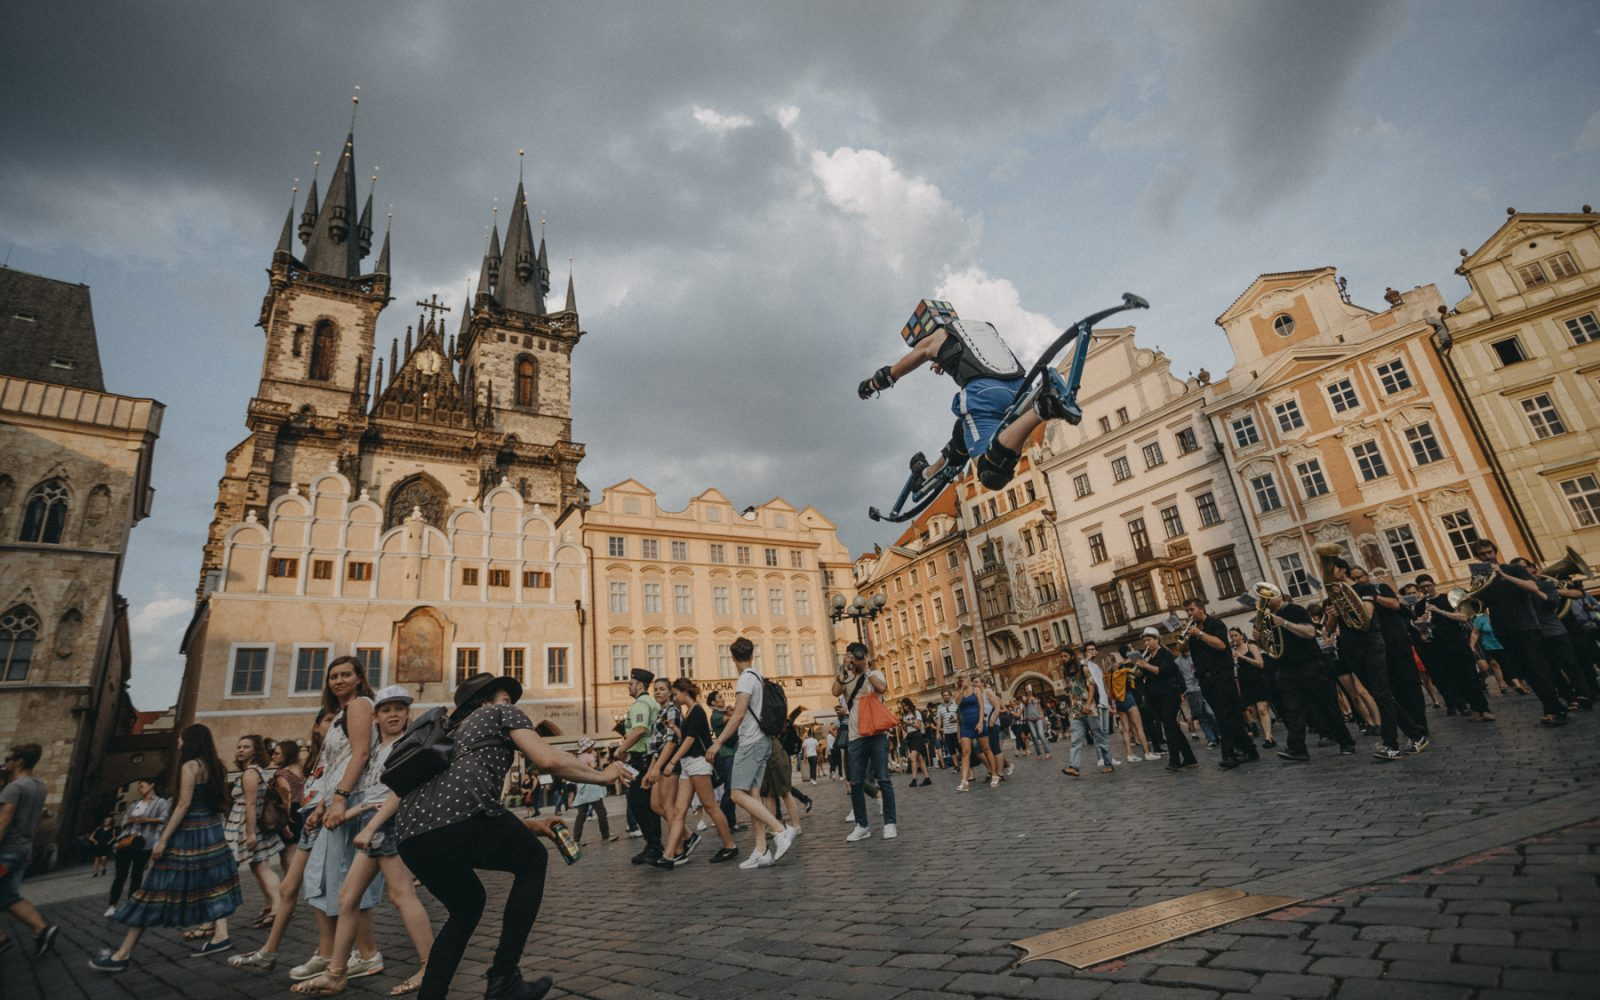 Prague to introduce new regulations, including exclusion zones, for Lime e-scooters